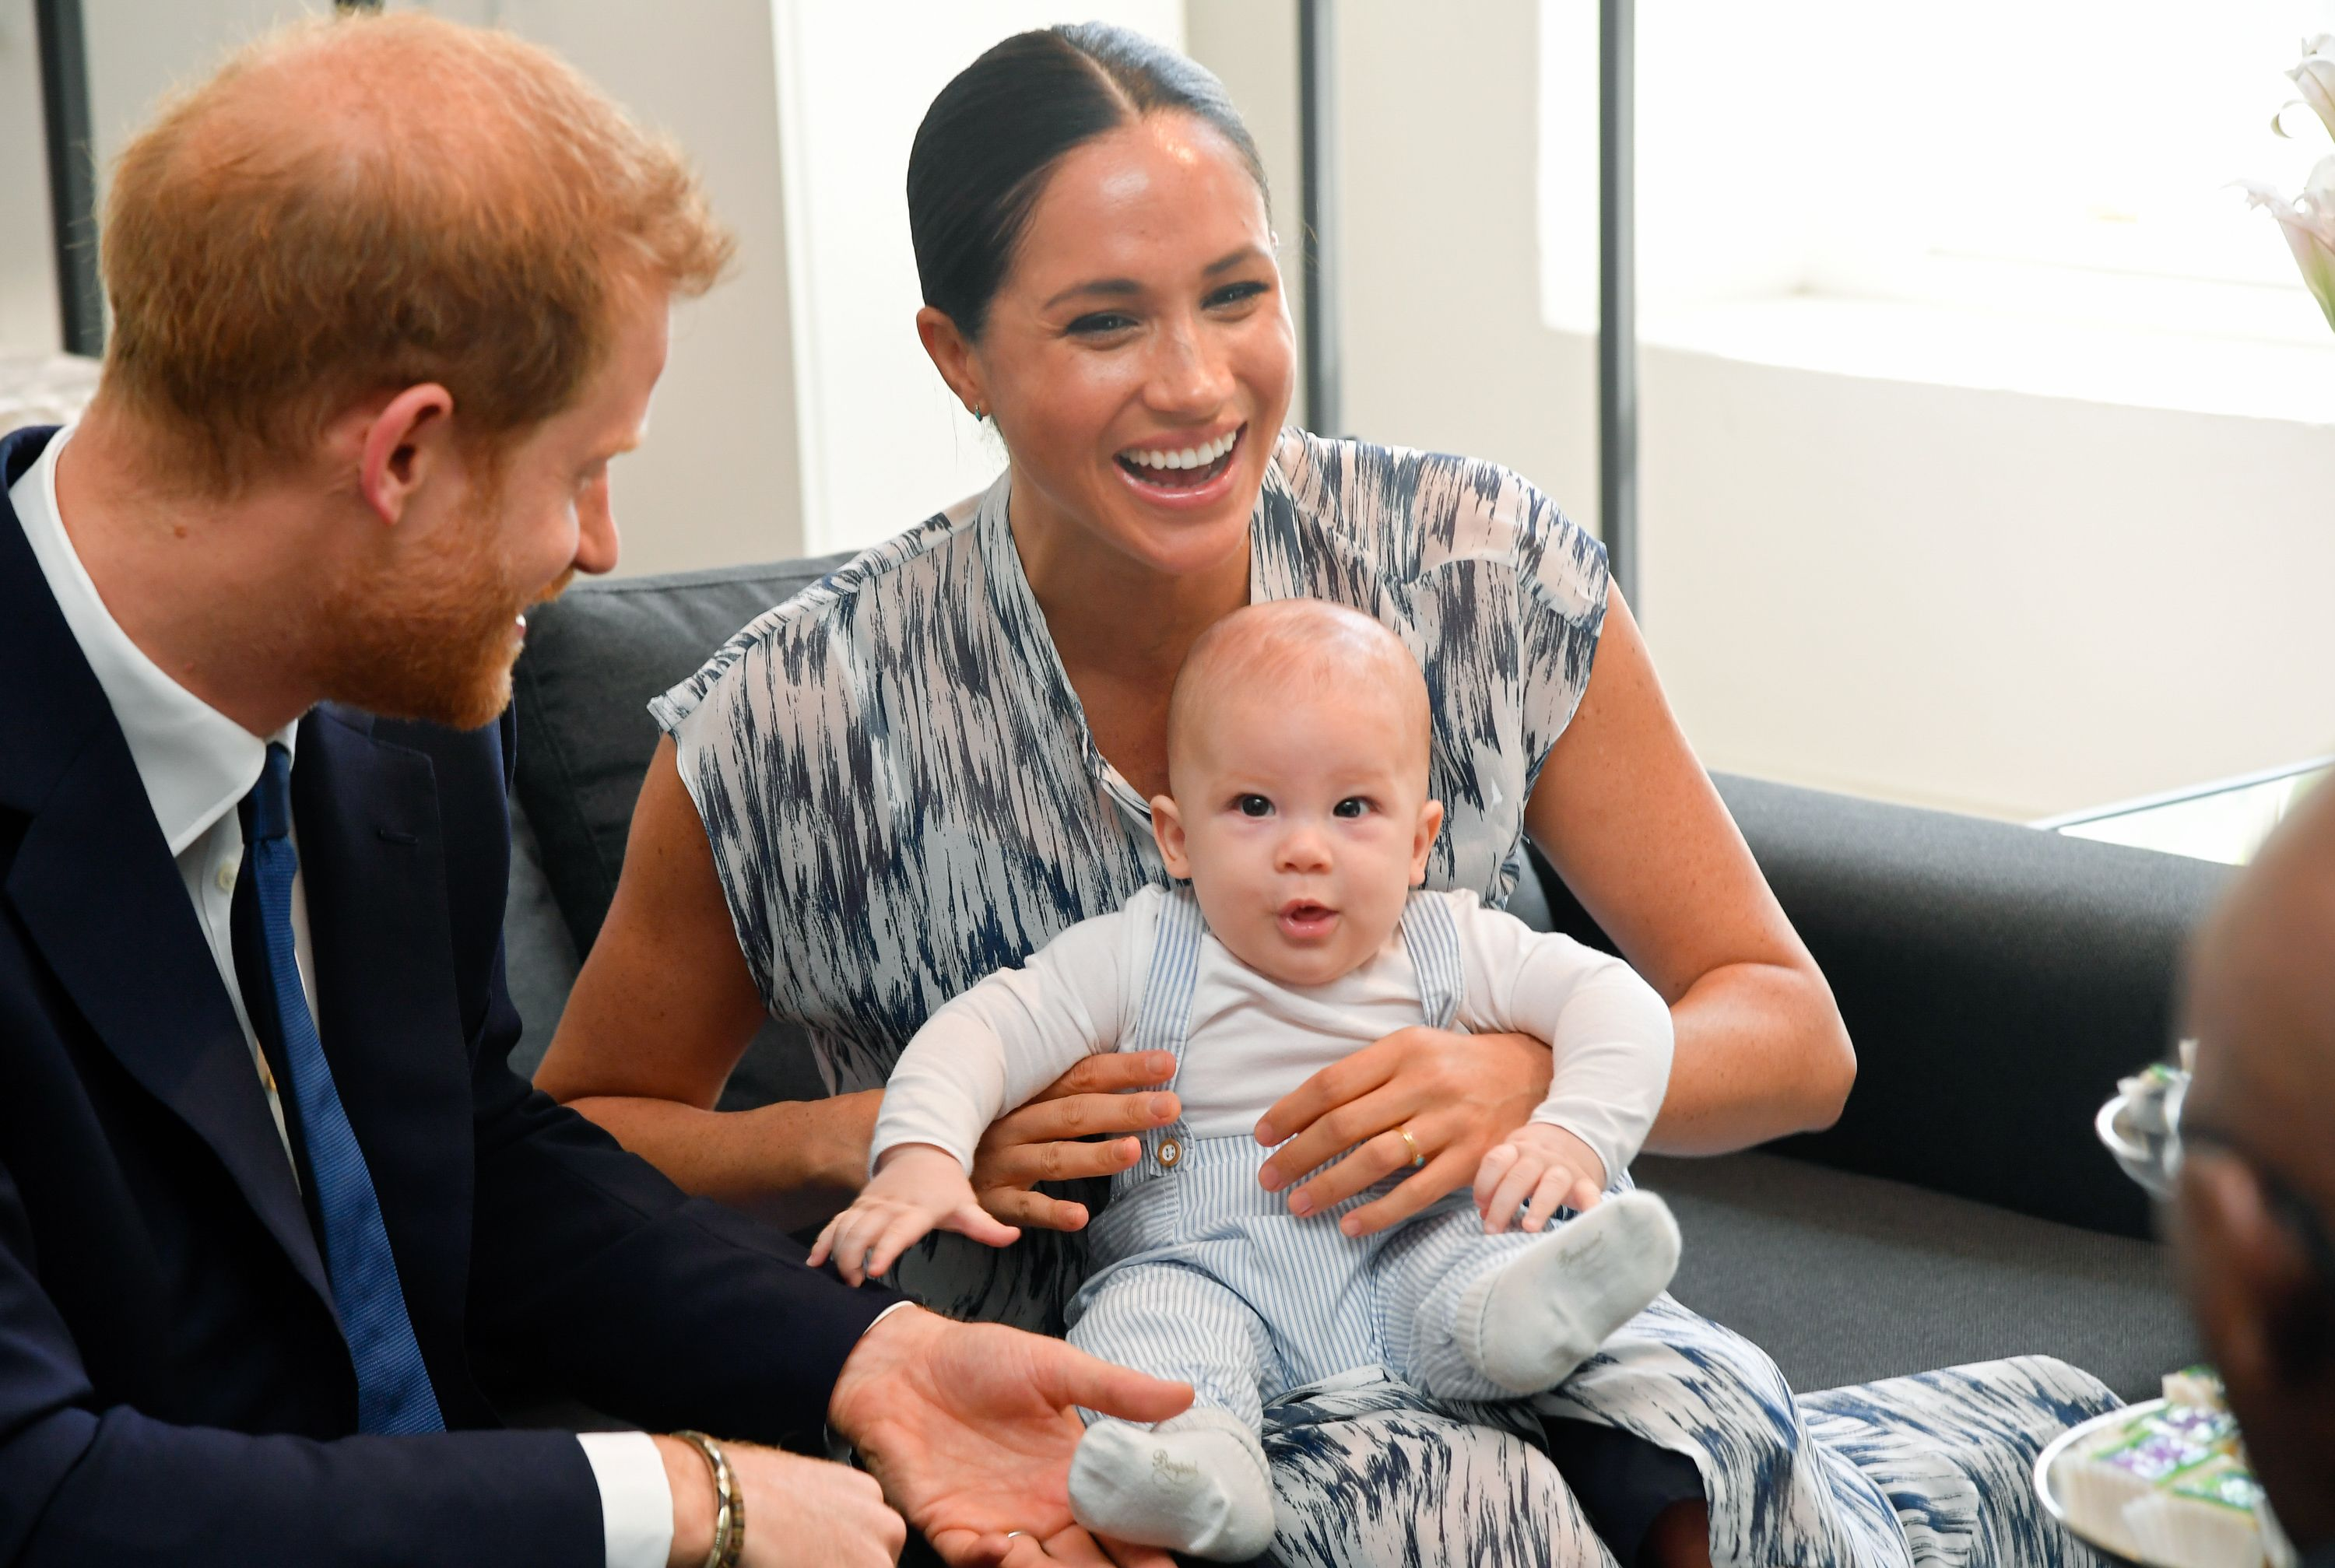 Meghan Markle Kisses Baby Archie in a Cute Clip from an Upcoming Documentary on the Royal Tour